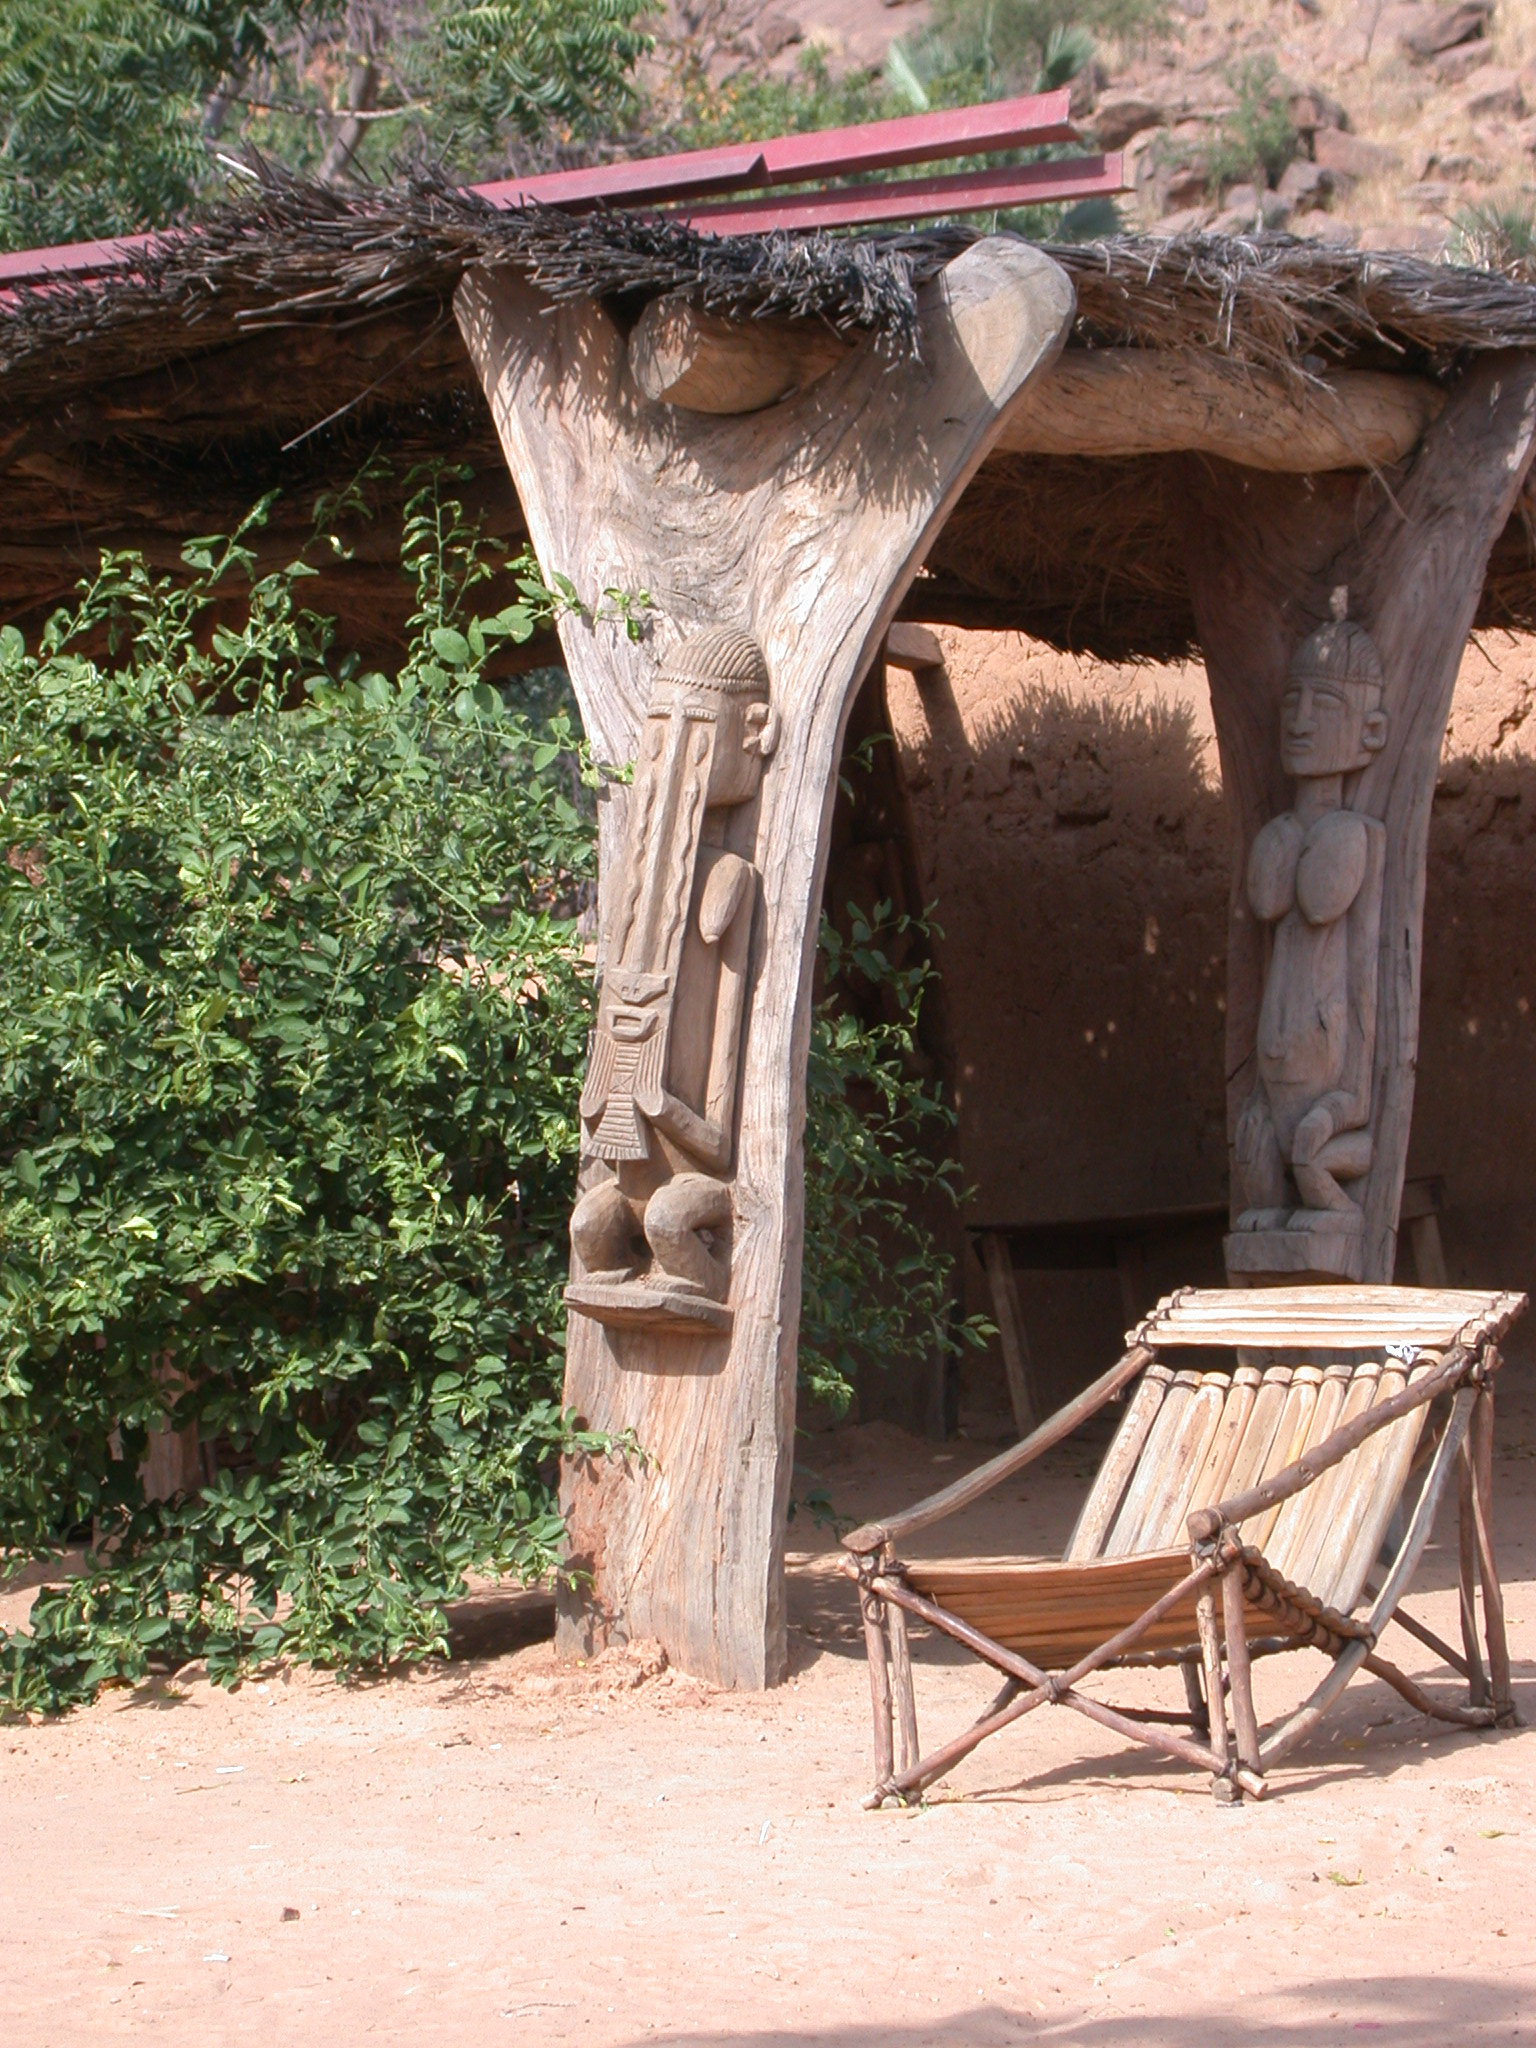 Carving of Dogon Deity, Hotel Courtyard in Village, Dogon Country, Mali